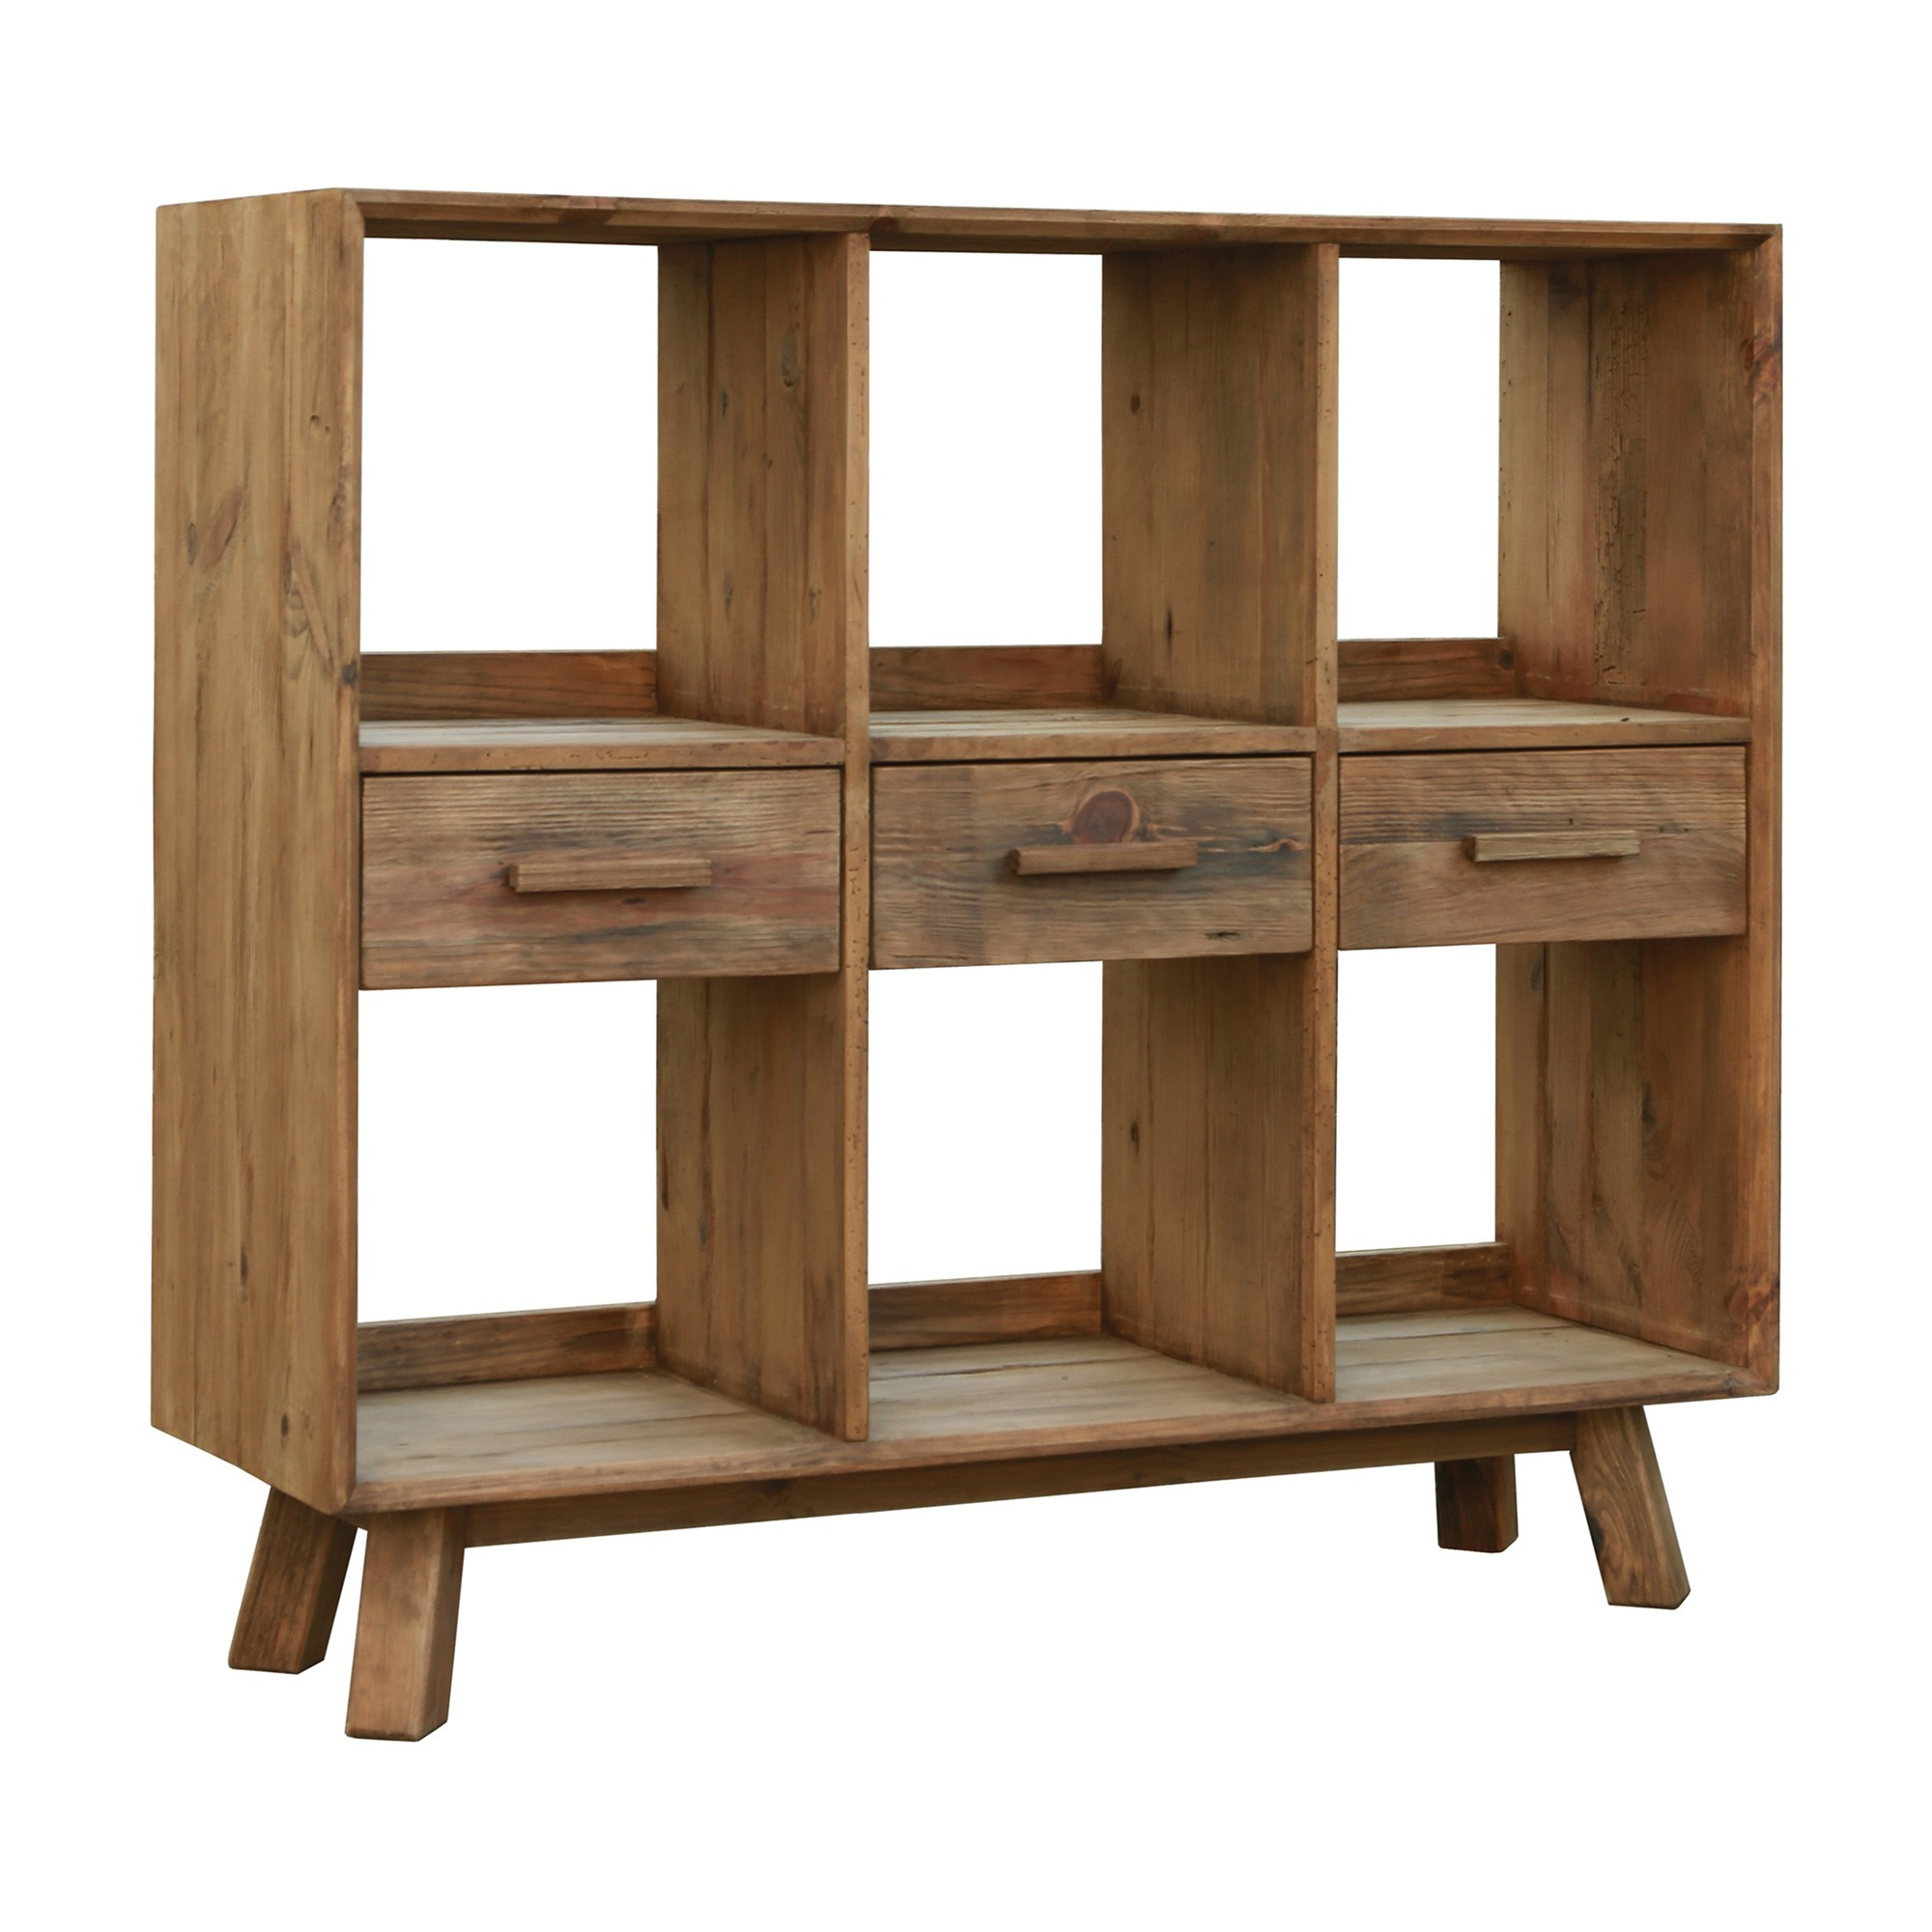 Mandalay Recycled Pine Timber Display Shelf